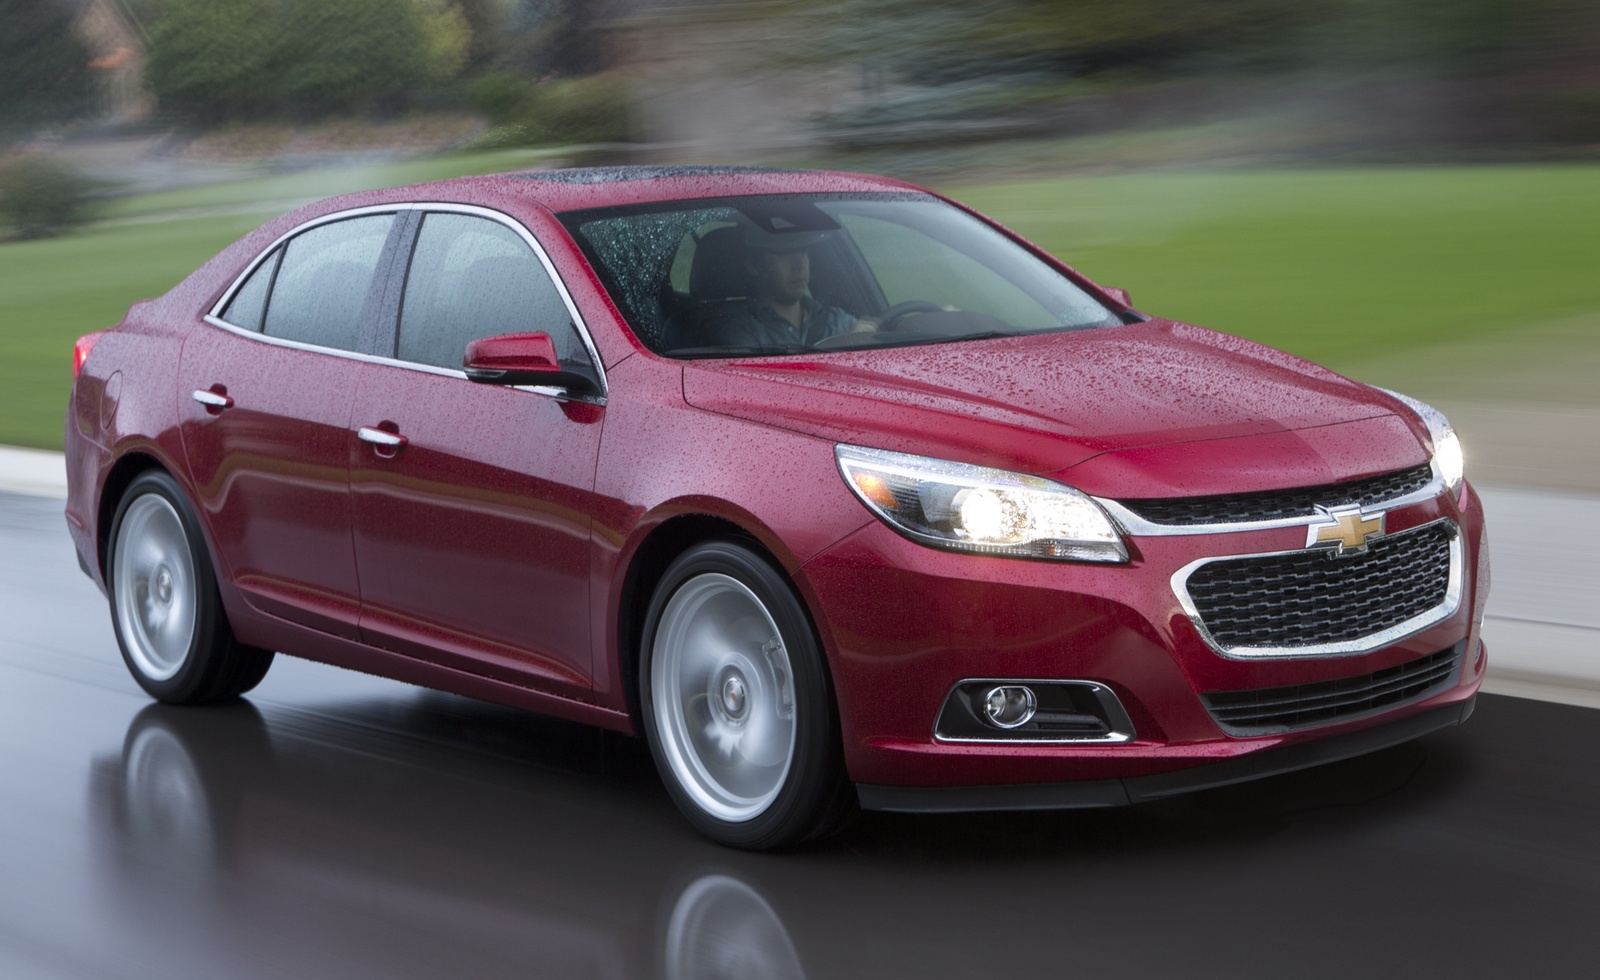 2015 chevrolet malibu review cargurus. Black Bedroom Furniture Sets. Home Design Ideas